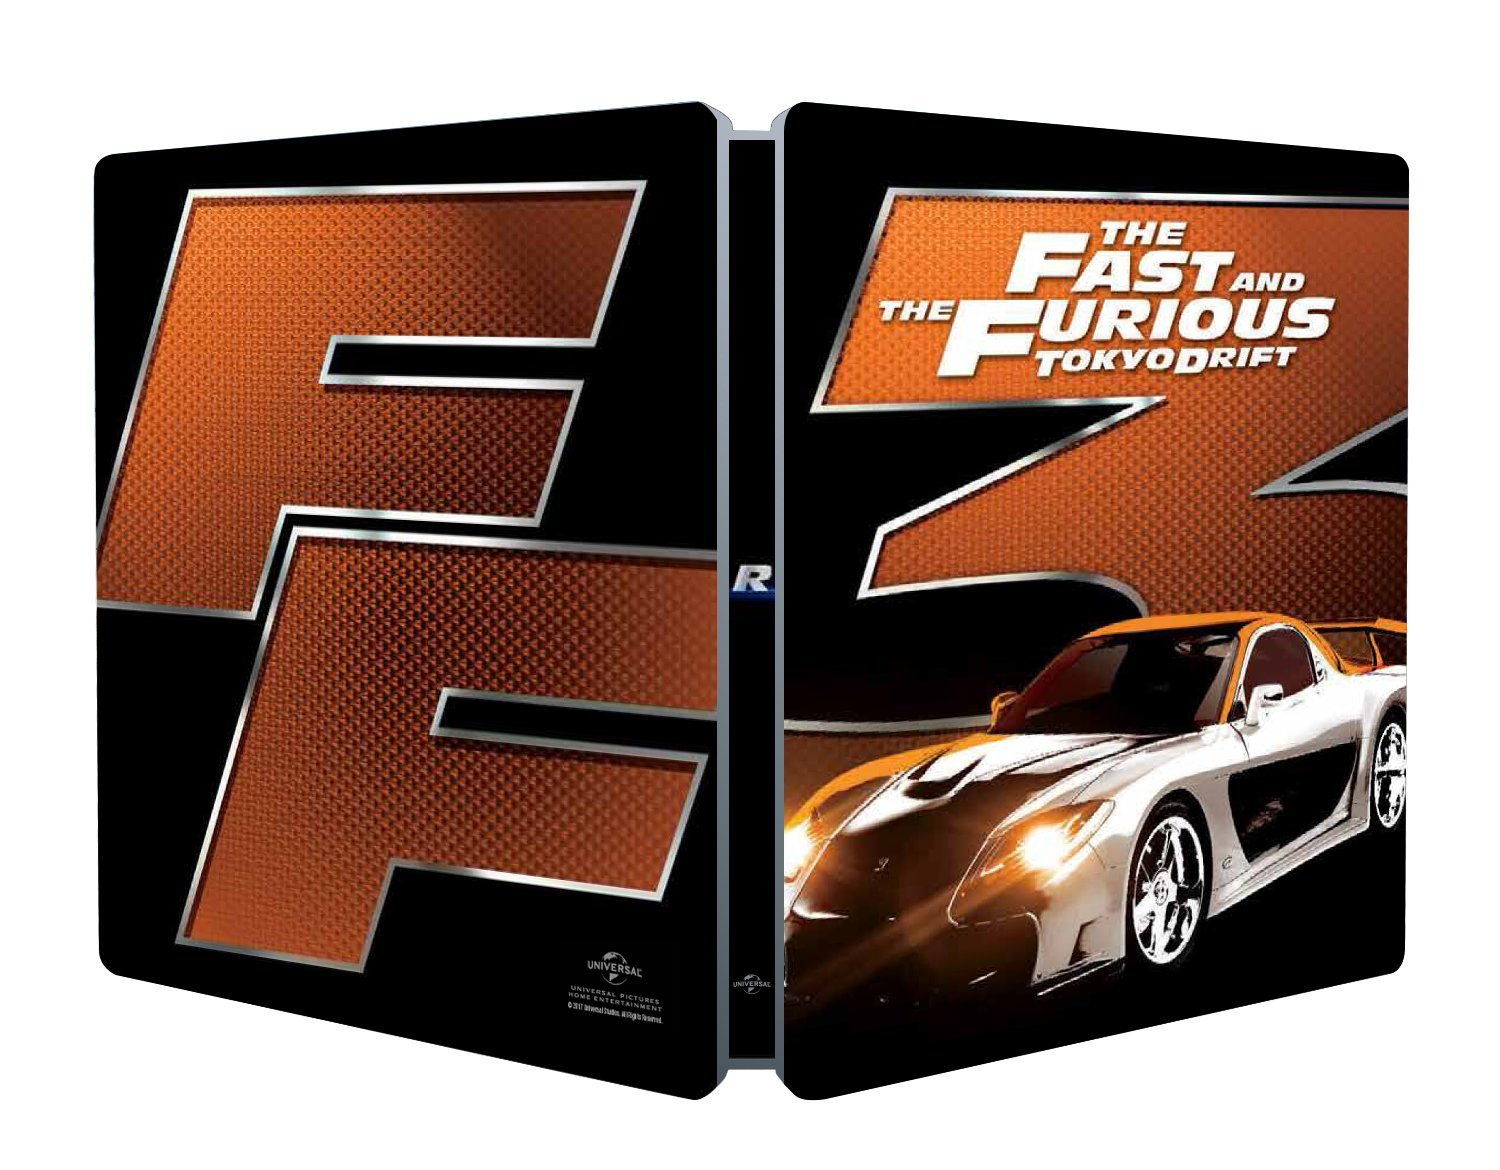 FAST AND FURIOUS - TOKIO DRIFT (STEELBOOK)